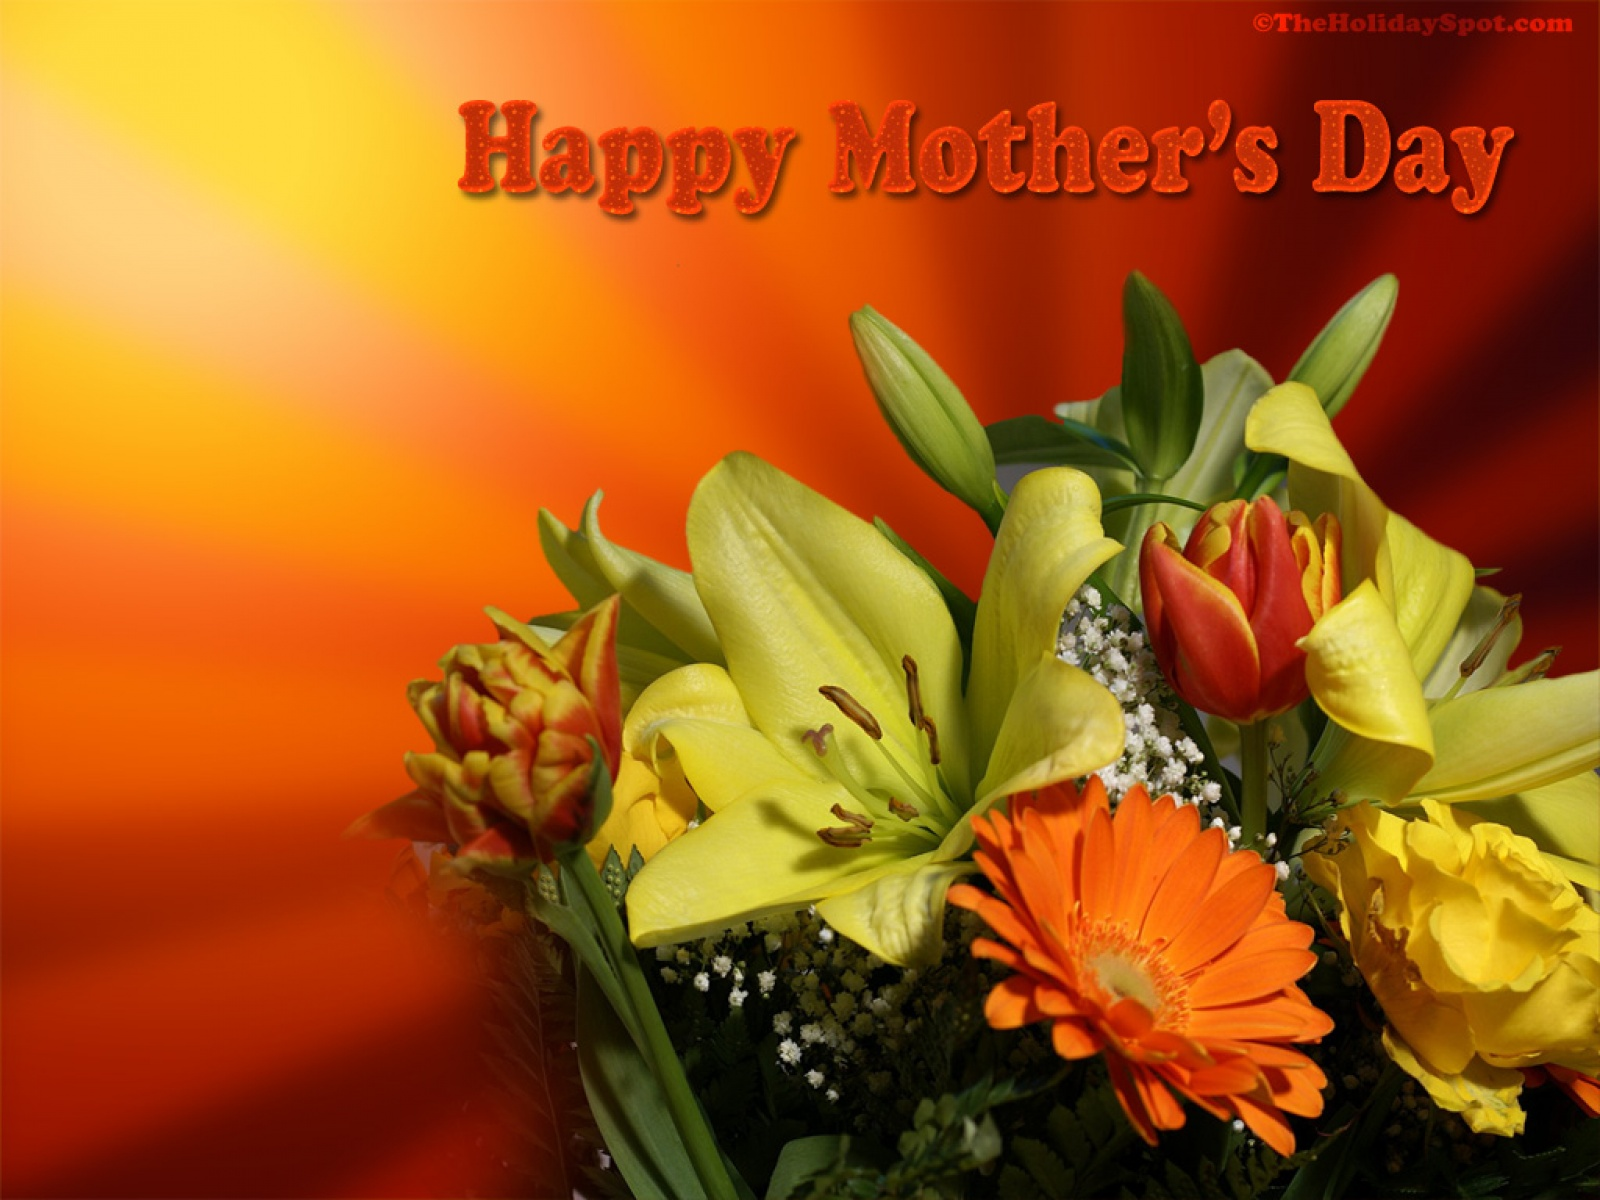 Free Mothers Day Screen Savers: Mother's Day Images Happy Mother's Day HD Wallpaper And